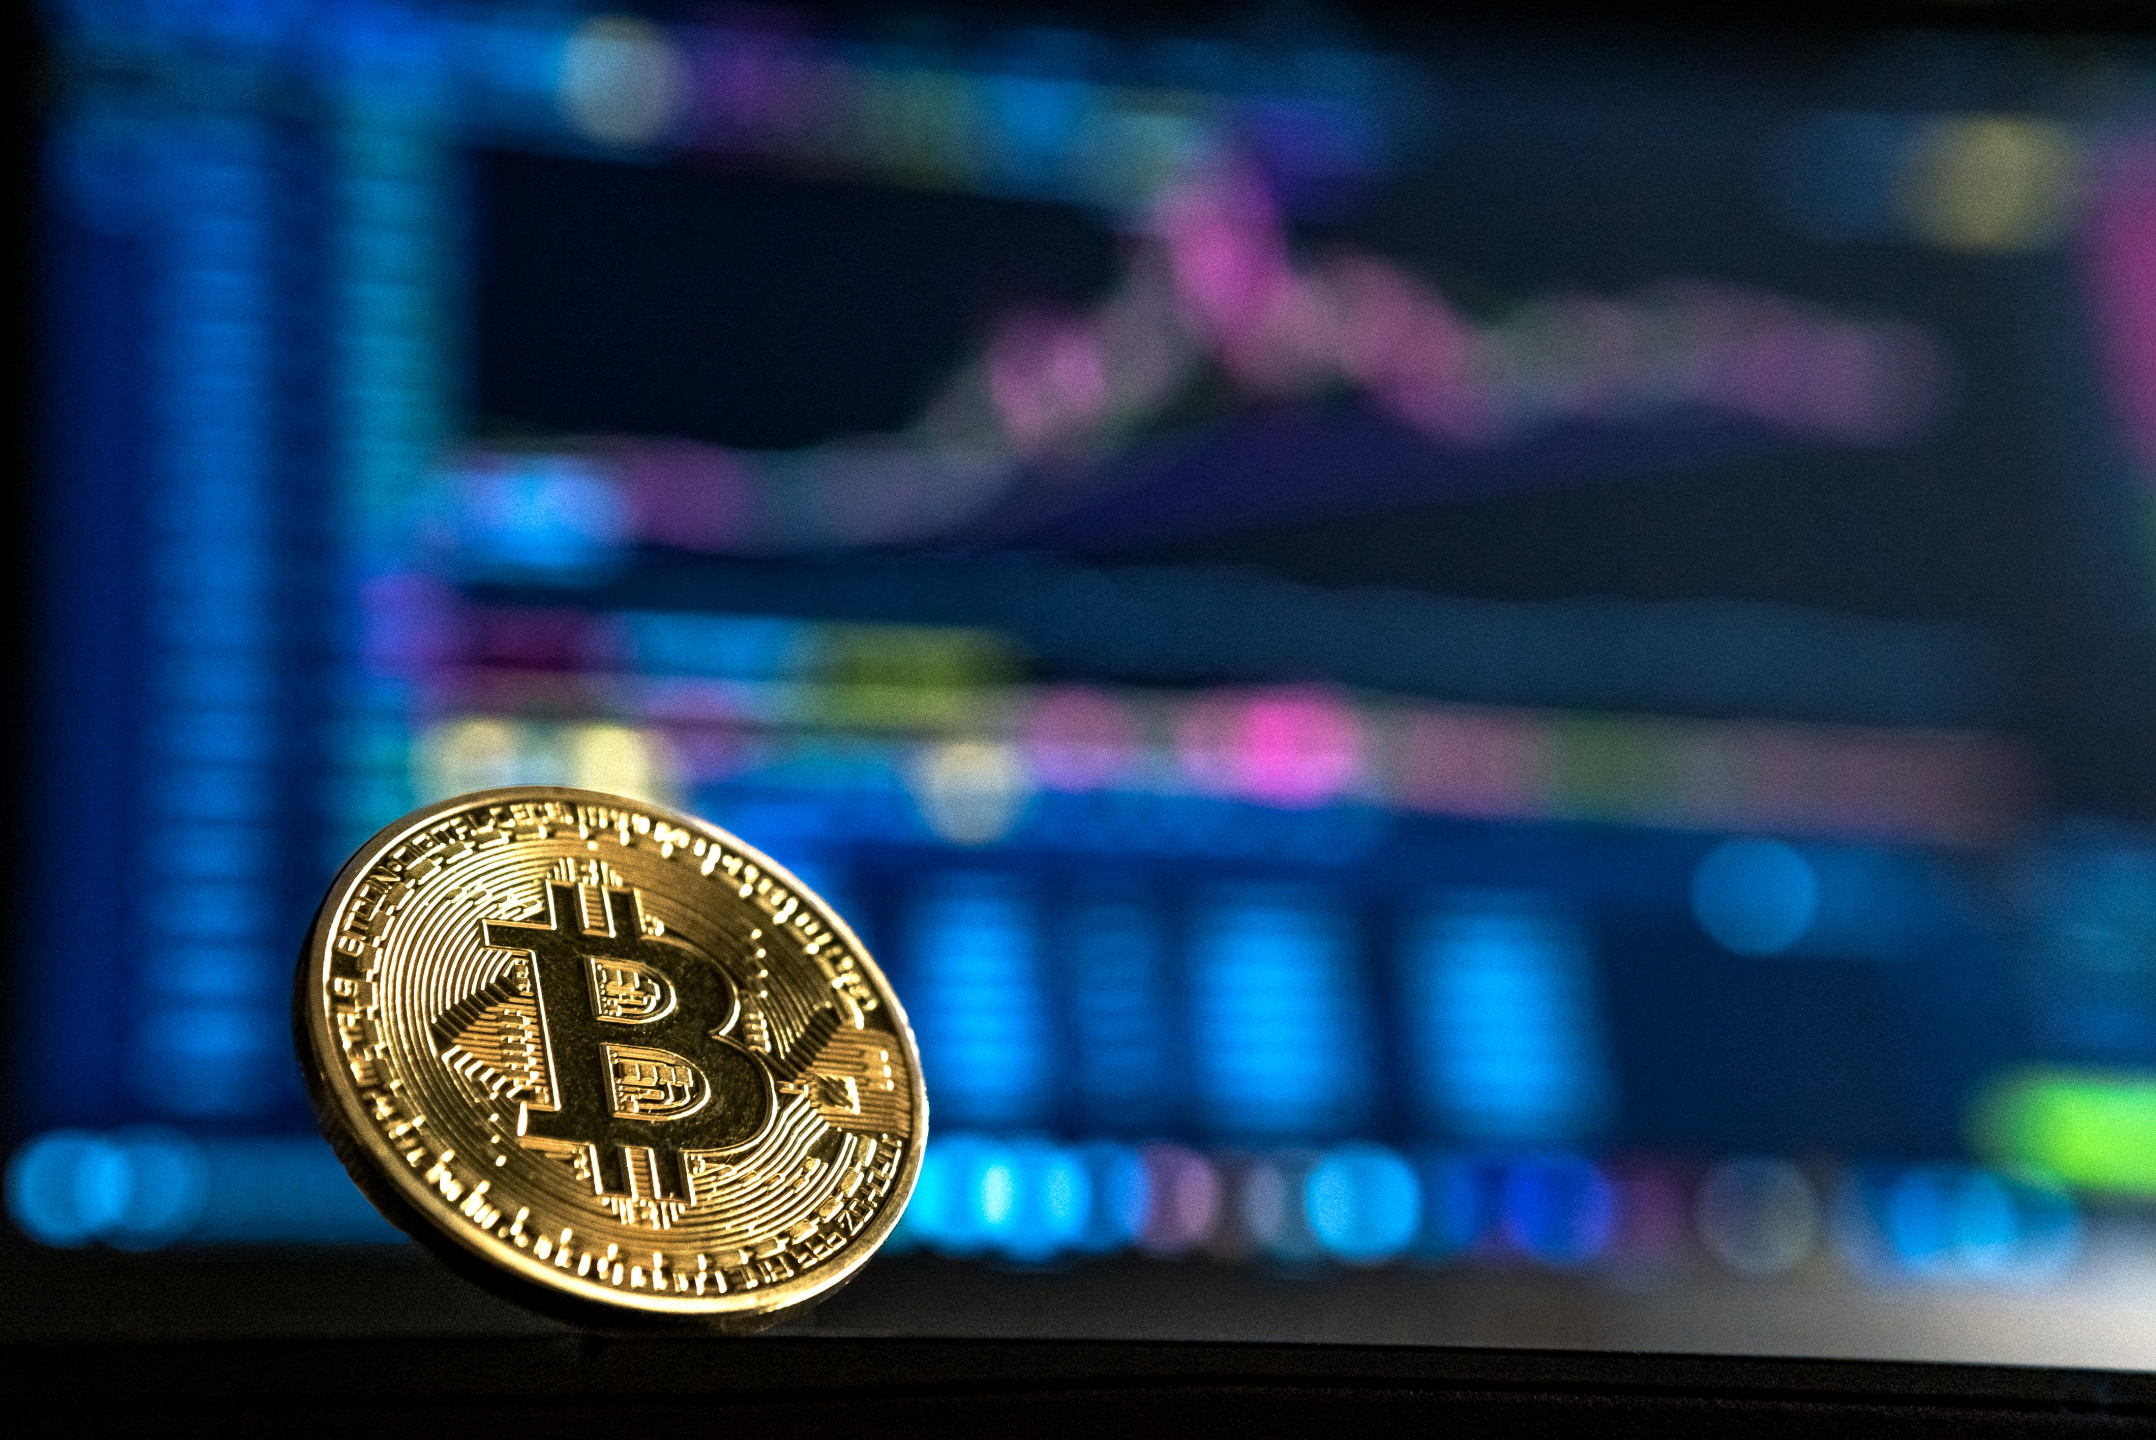 Bitcoin price analysis - BTCUSD stages minor recovery above $9600